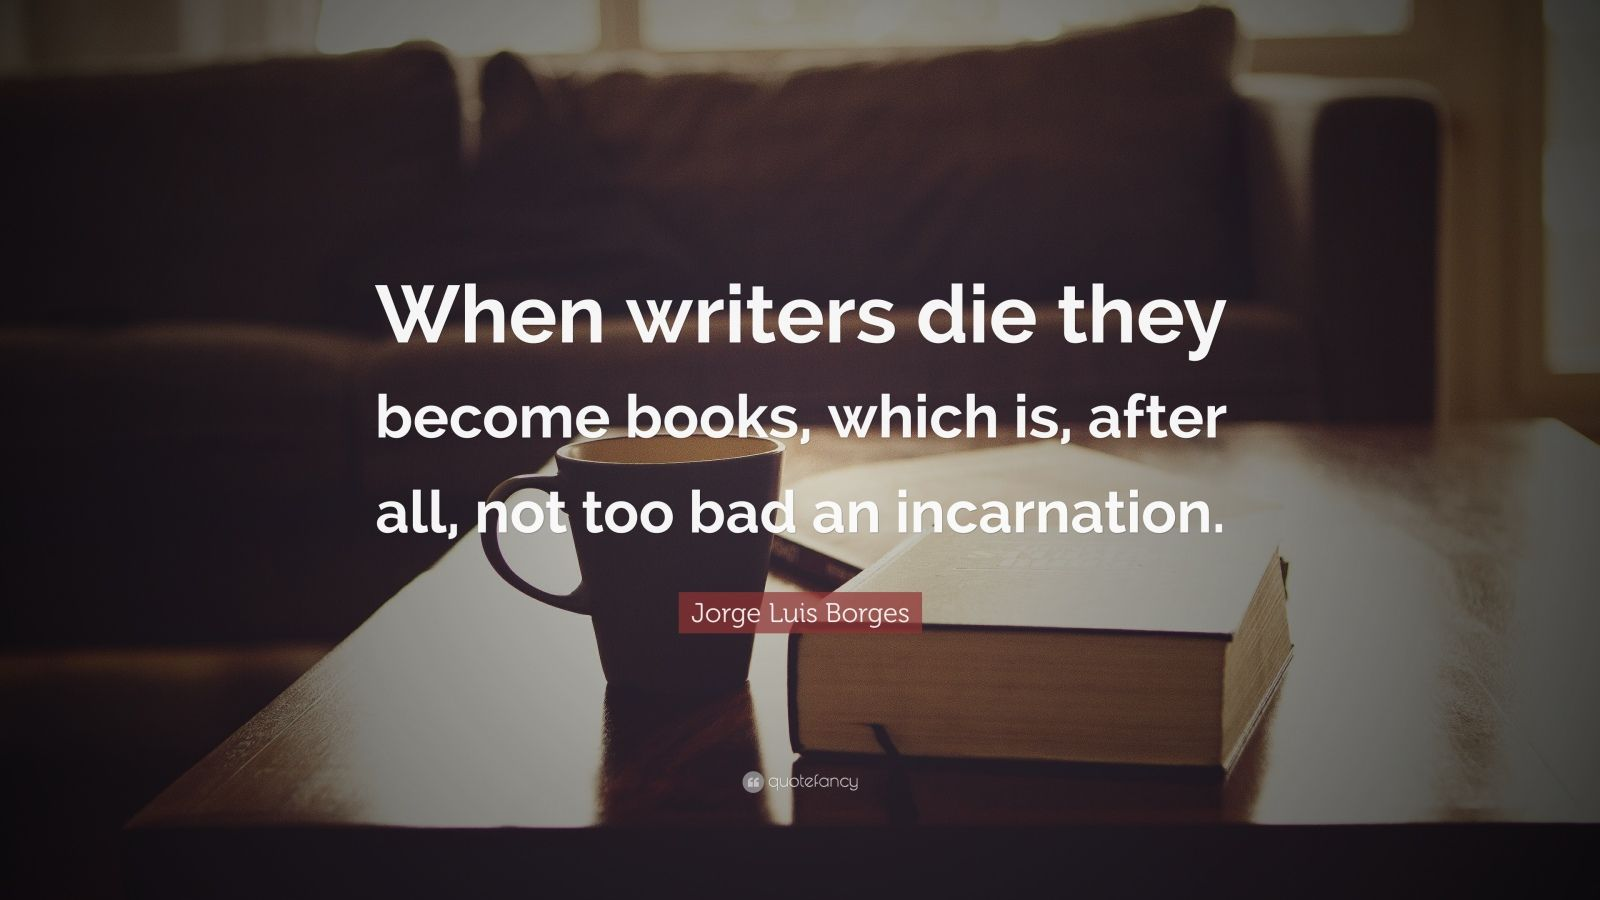 """Jorge Luis Borges Quote: """"When writers die they become books, which is, after all, not too bad an incarnation."""""""